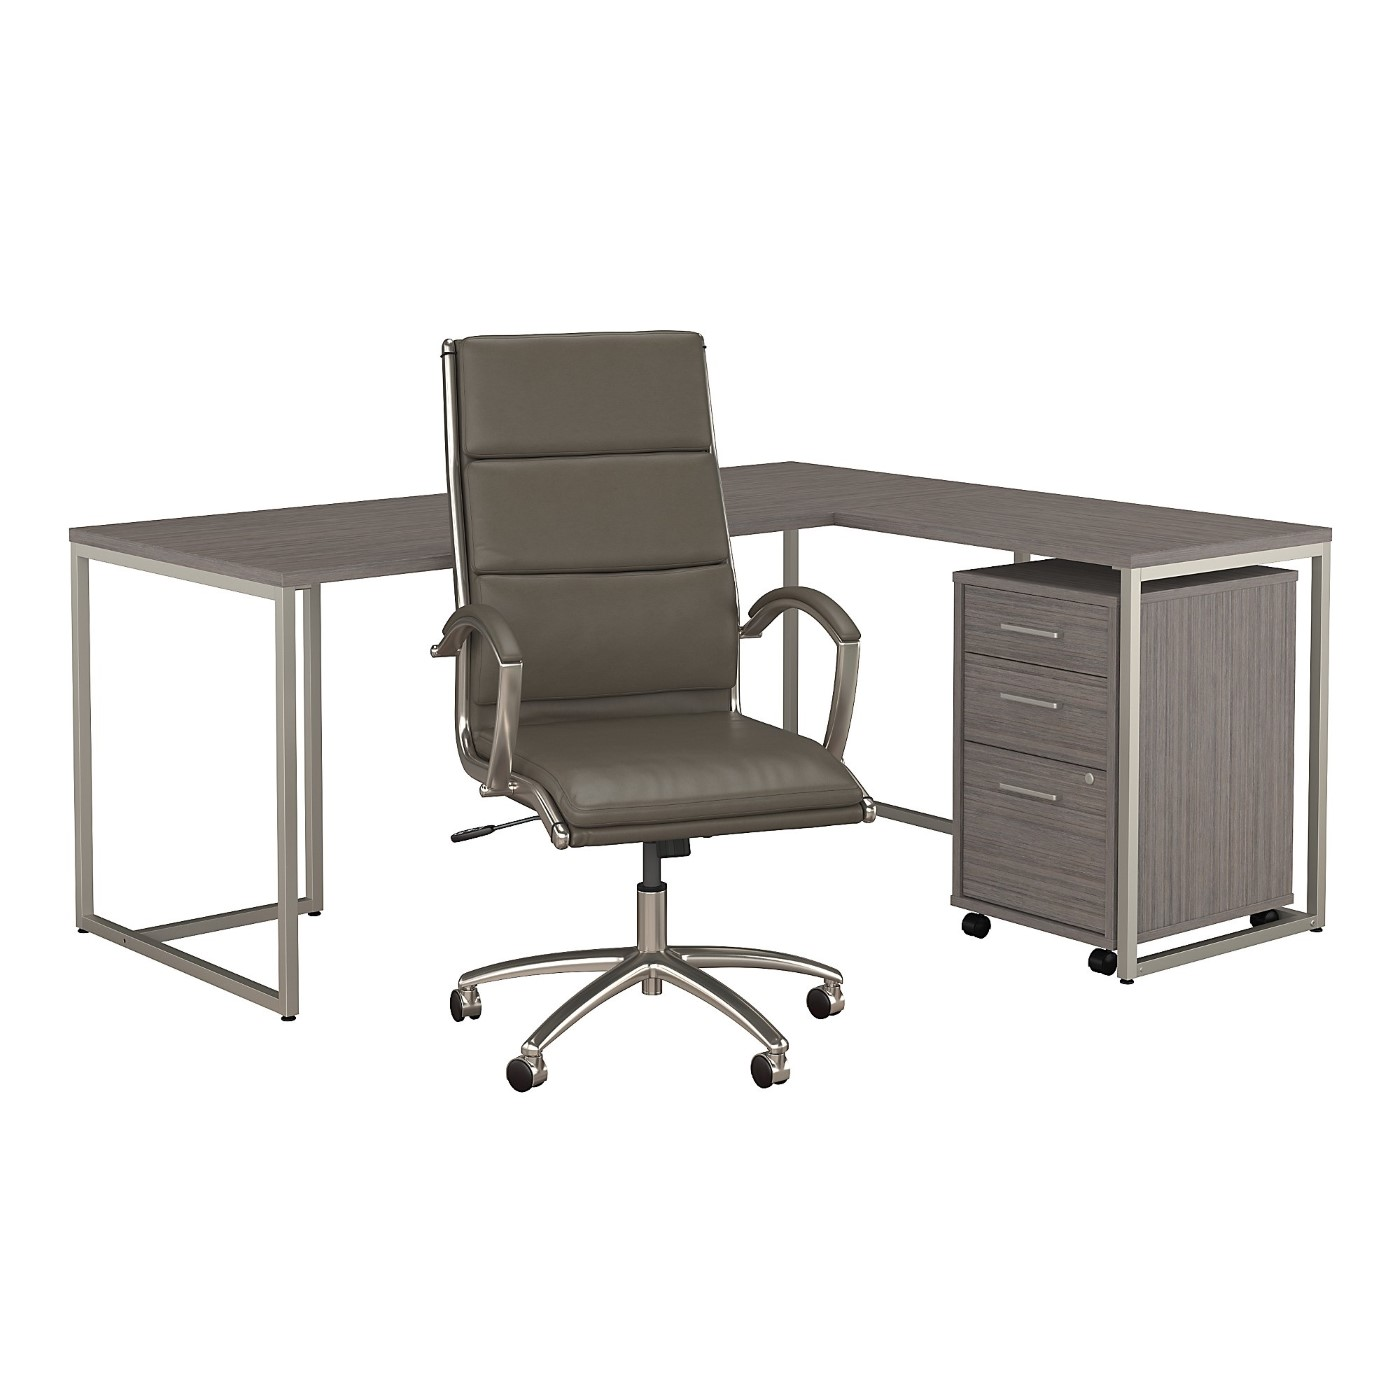 OFFICE BY KATHY IRELAND� METHOD 72W L SHAPED DESK WITH MOBILE FILE CABINET AND HIGH BACK OFFICE CHAIR. FREE SHIPPING